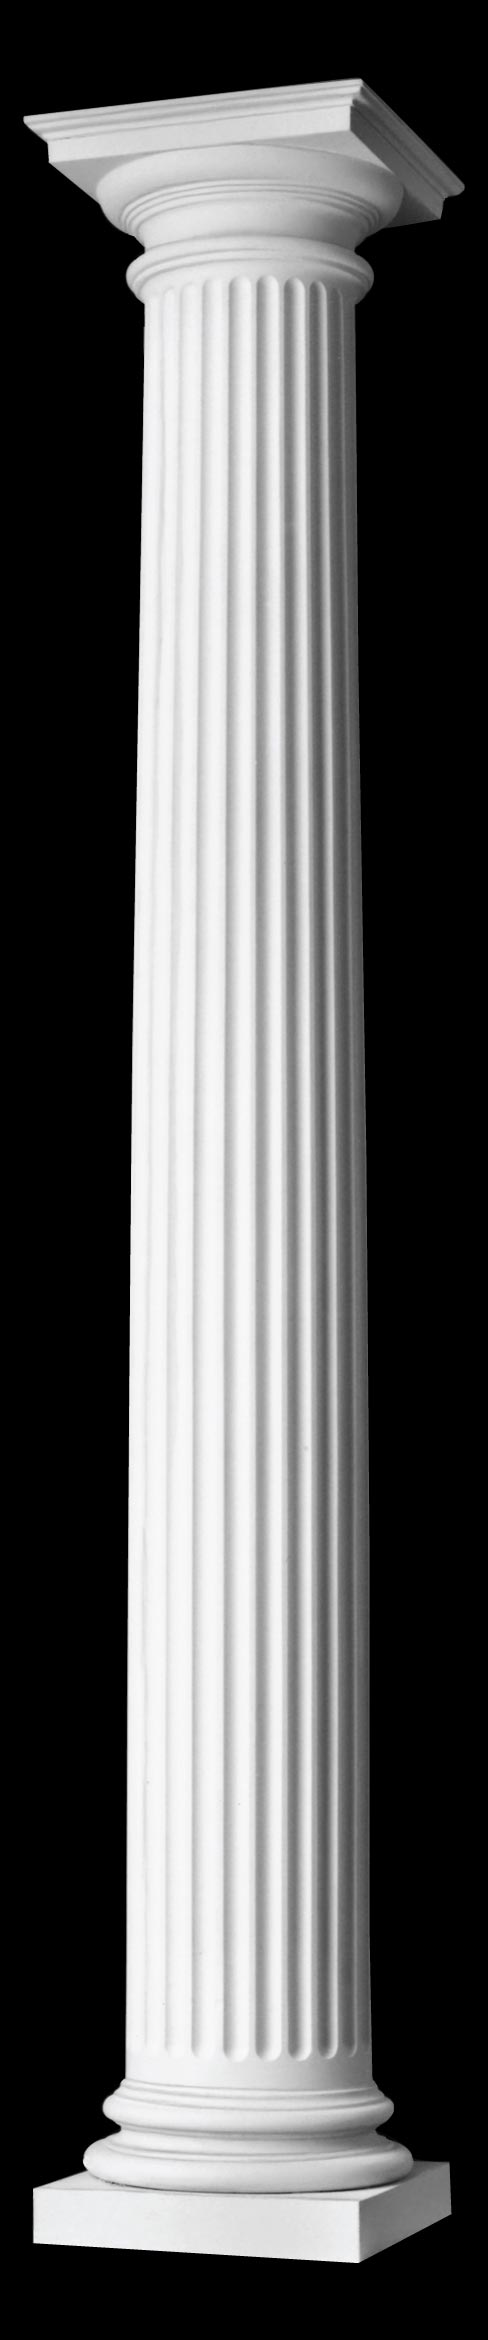 Fluted wood column roman doric capital ionic attic base for Architectural wood columns